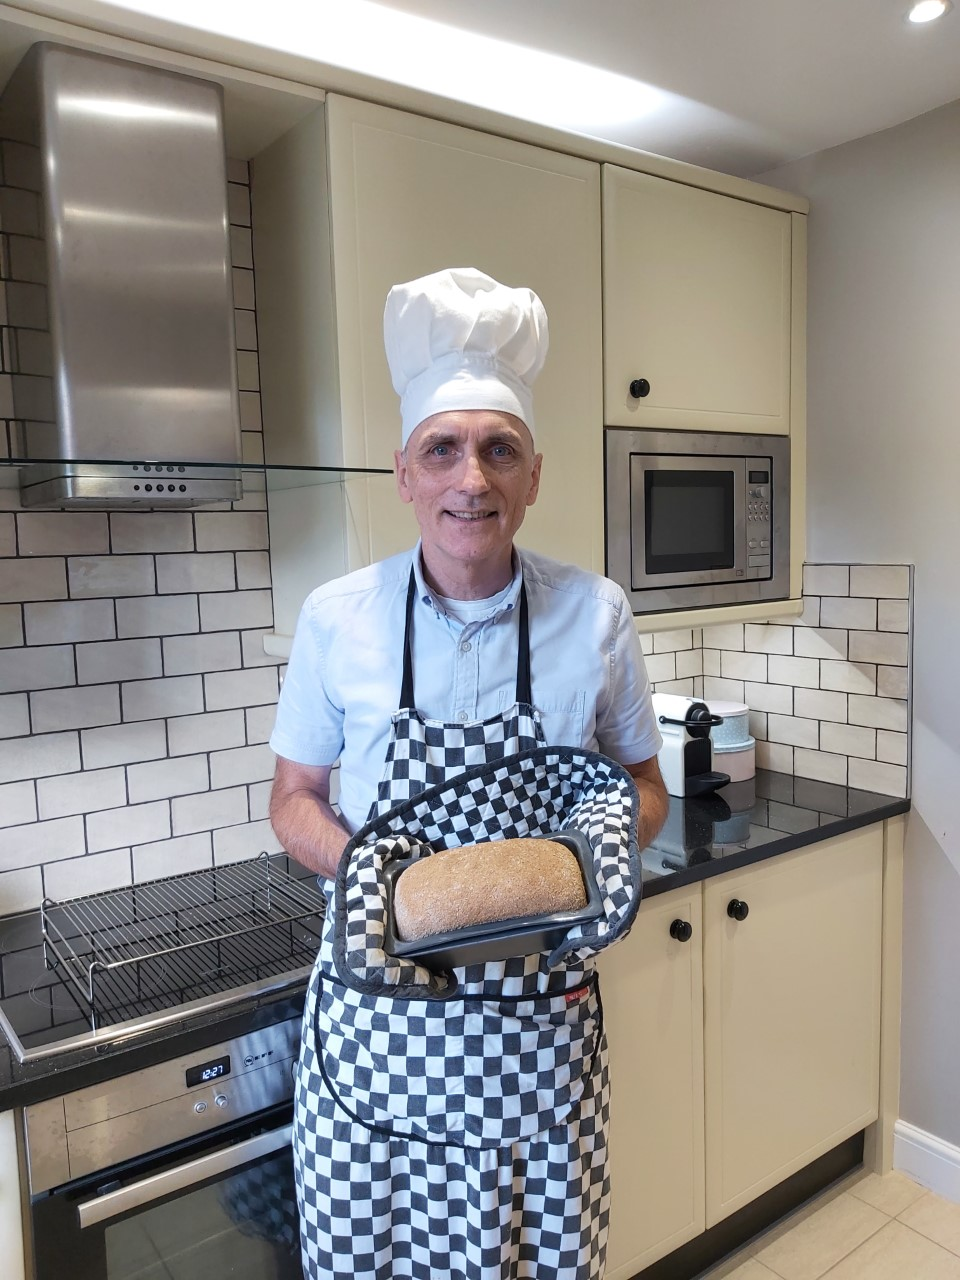 VEGAN COOKERY WITH CHRIS WILLIAMSON